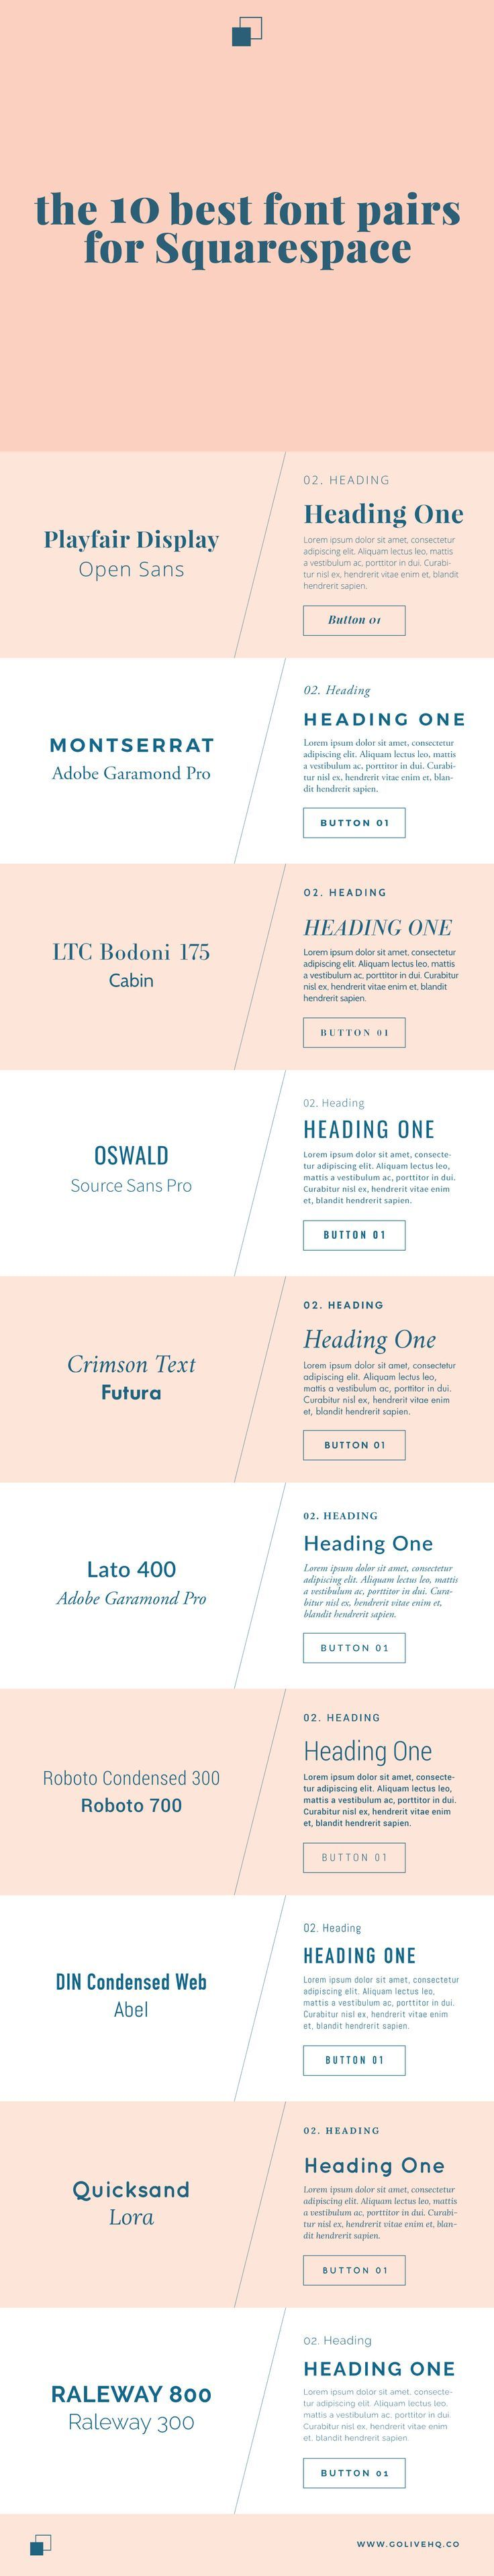 10 best font pairs for Squarespace.